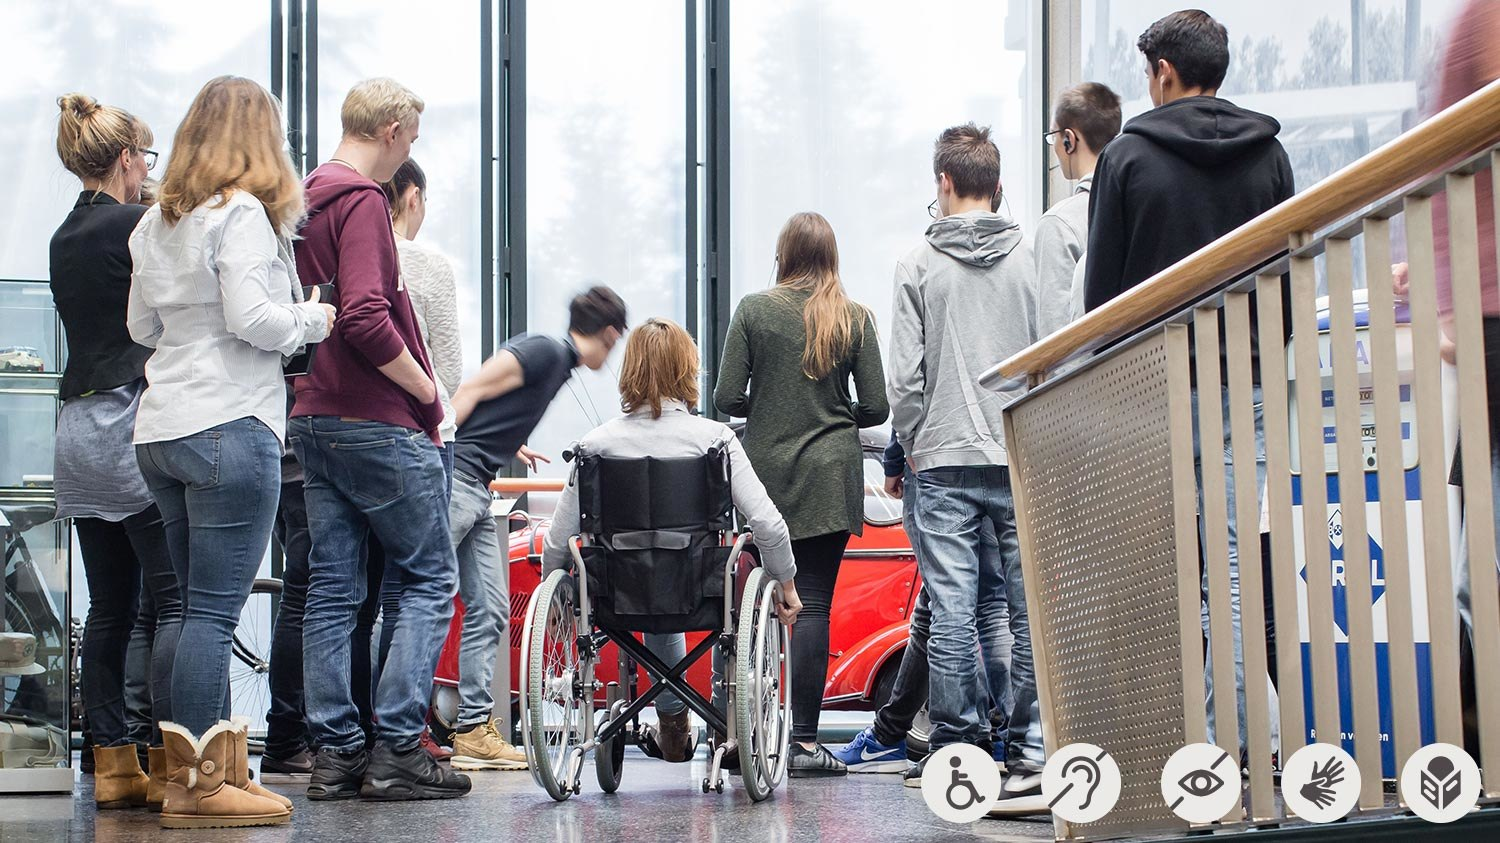 A group with a girl in a wheelchair during a guided tour through Haus der Geschichte museum.